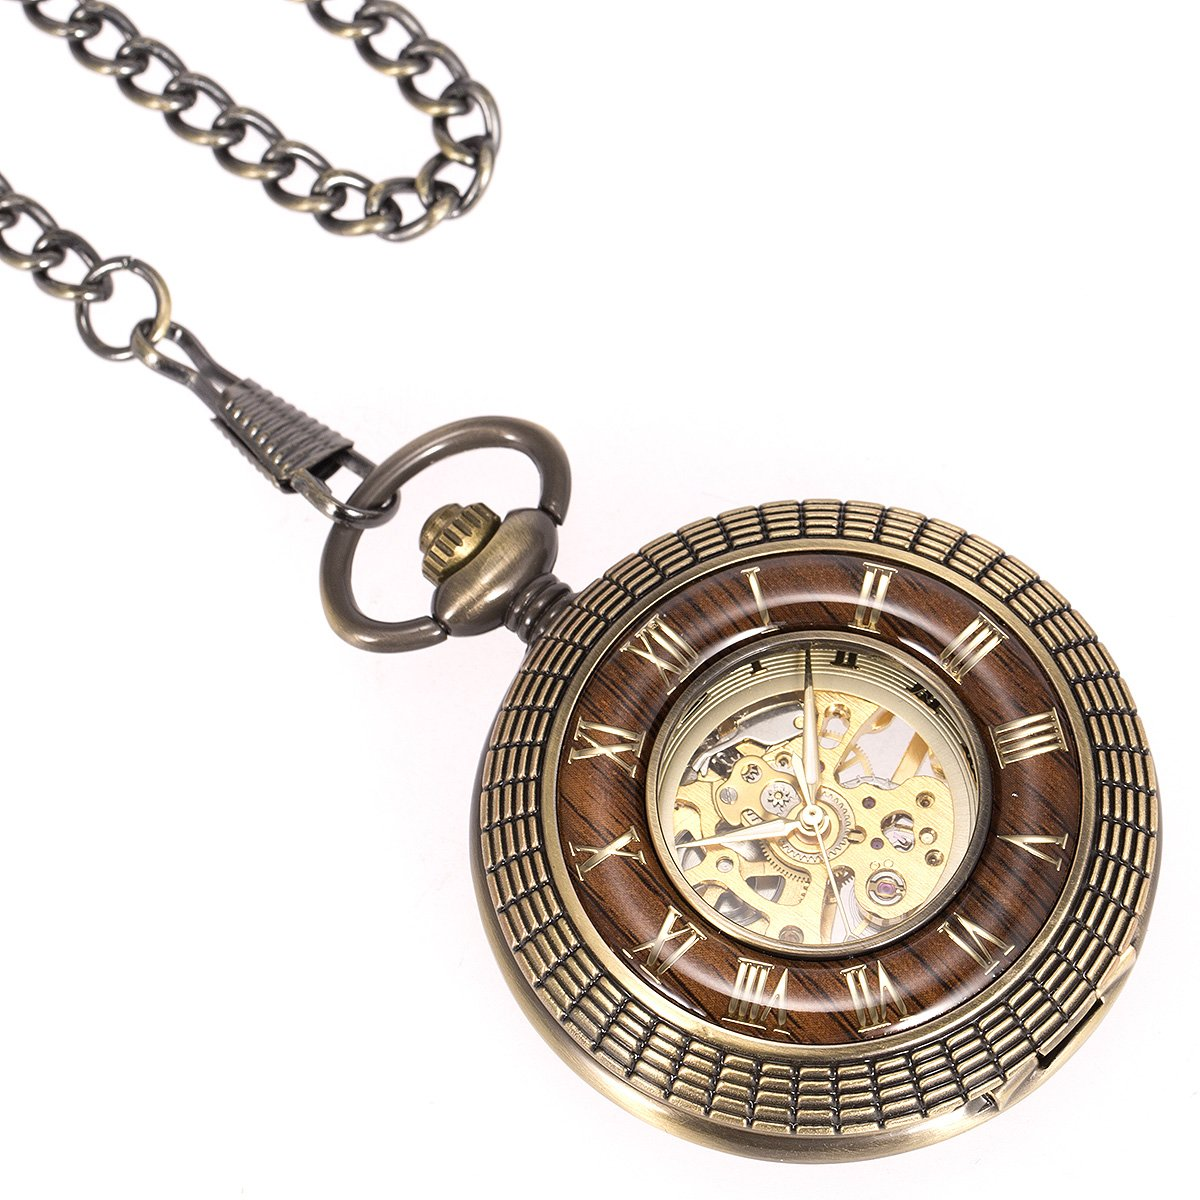 ManChDa Mens imitative wood Luminous Skeleton Mechanical Roman Numerals Pocket Watch With Chain Gift by ManChDa (Image #3)